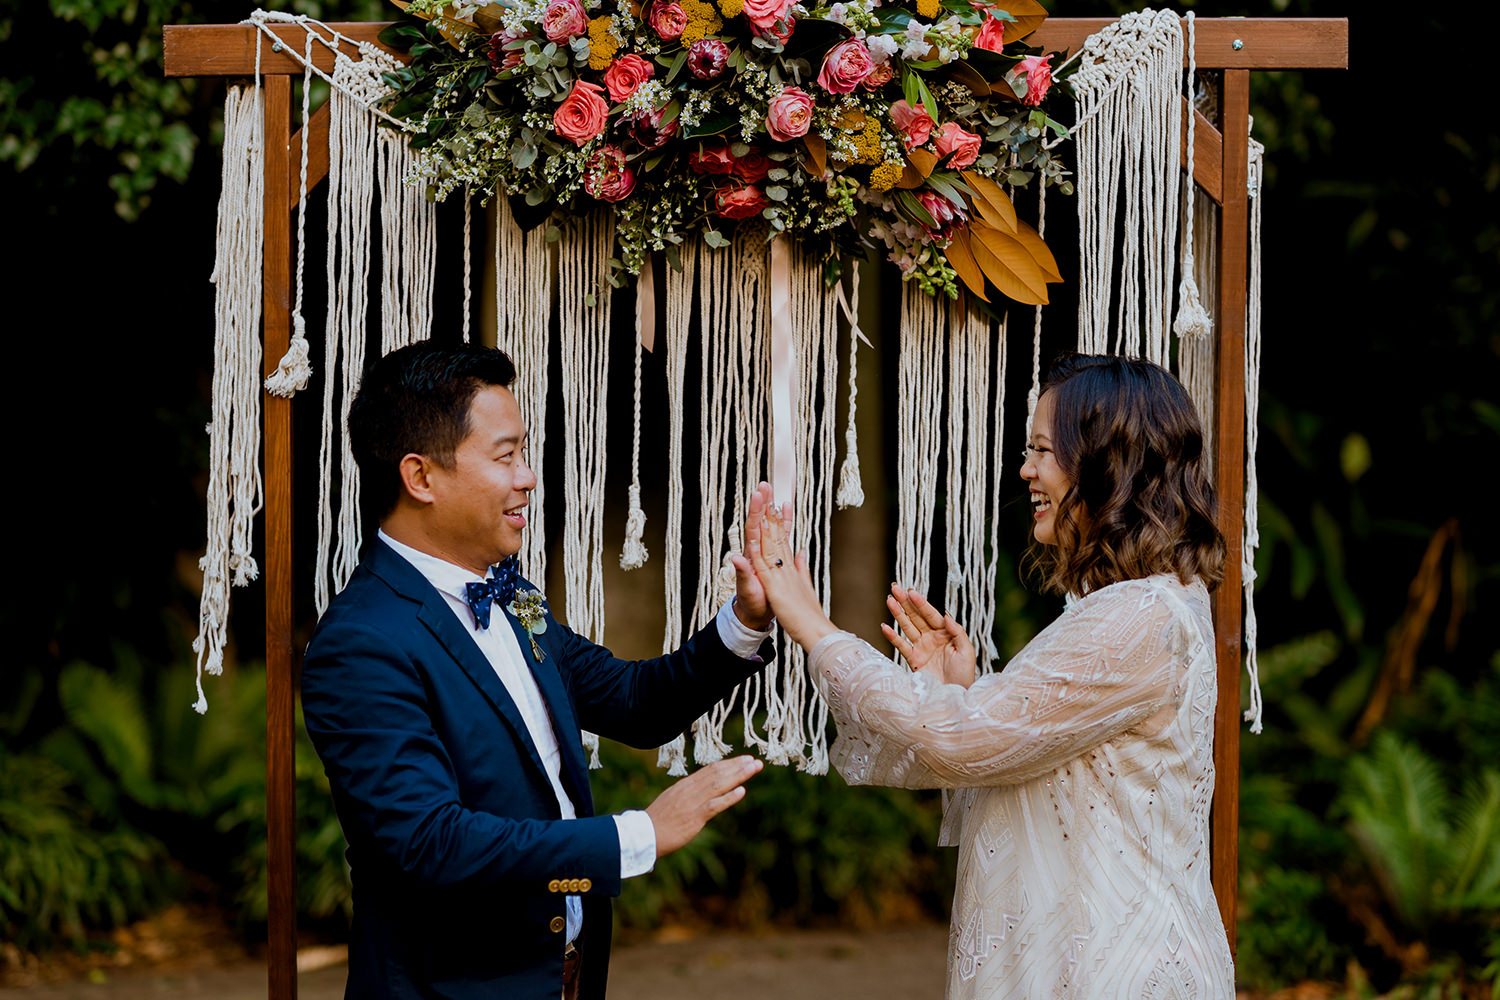 Playful asian bride and groom high-fiving in front of flower arbor